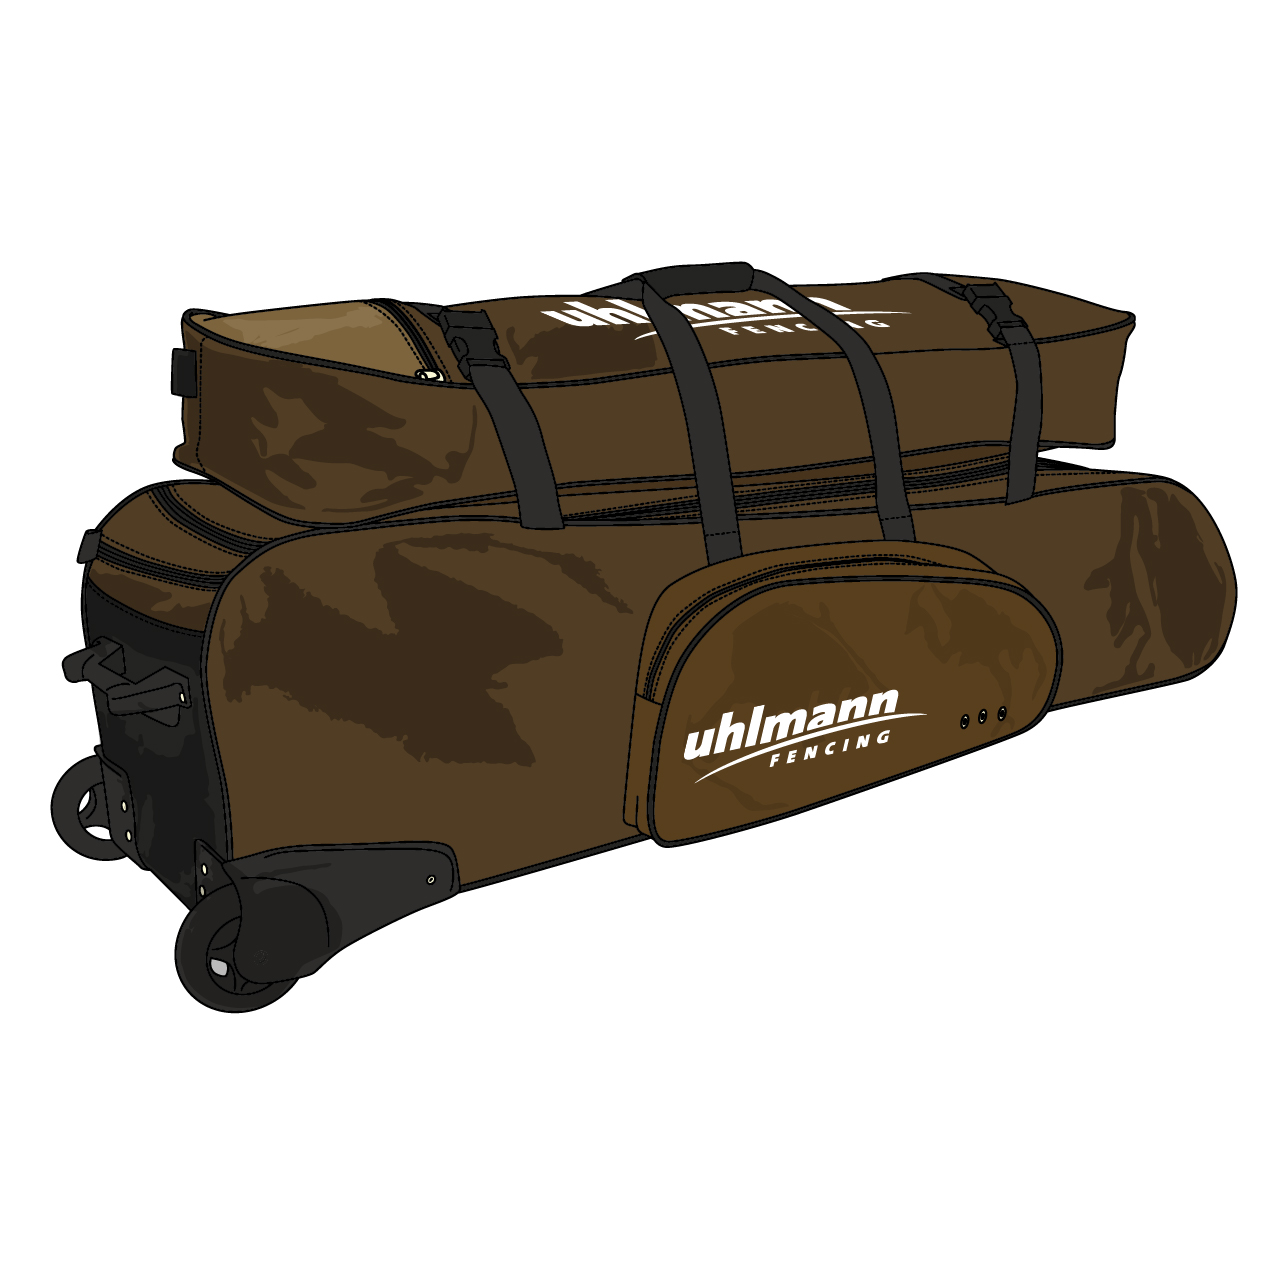 rollbag for historical fencing